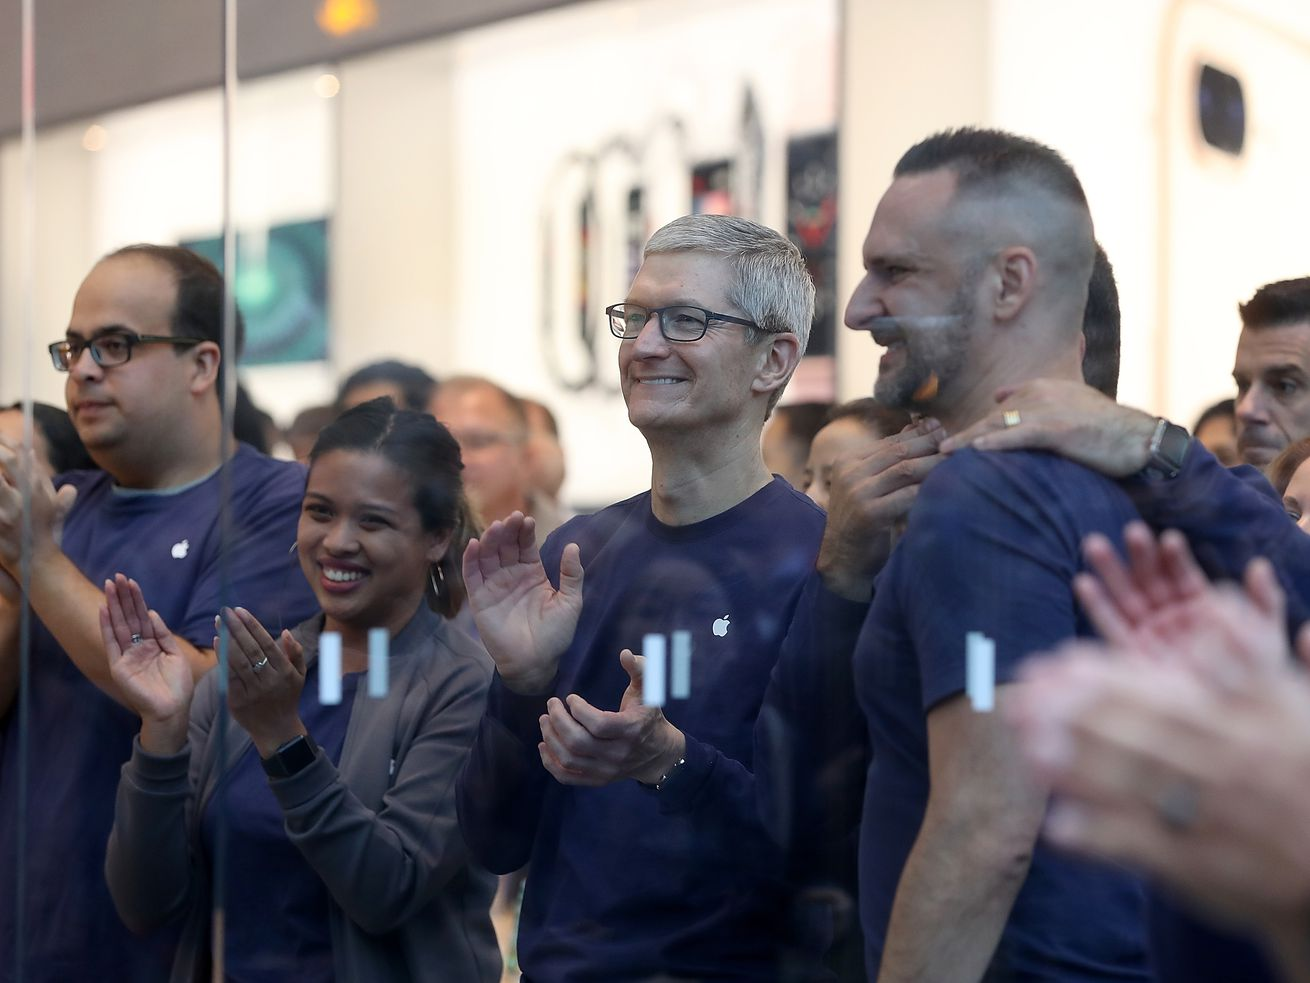 It's official: Apple is the first U.S. public company to reach a $1 trillion market value